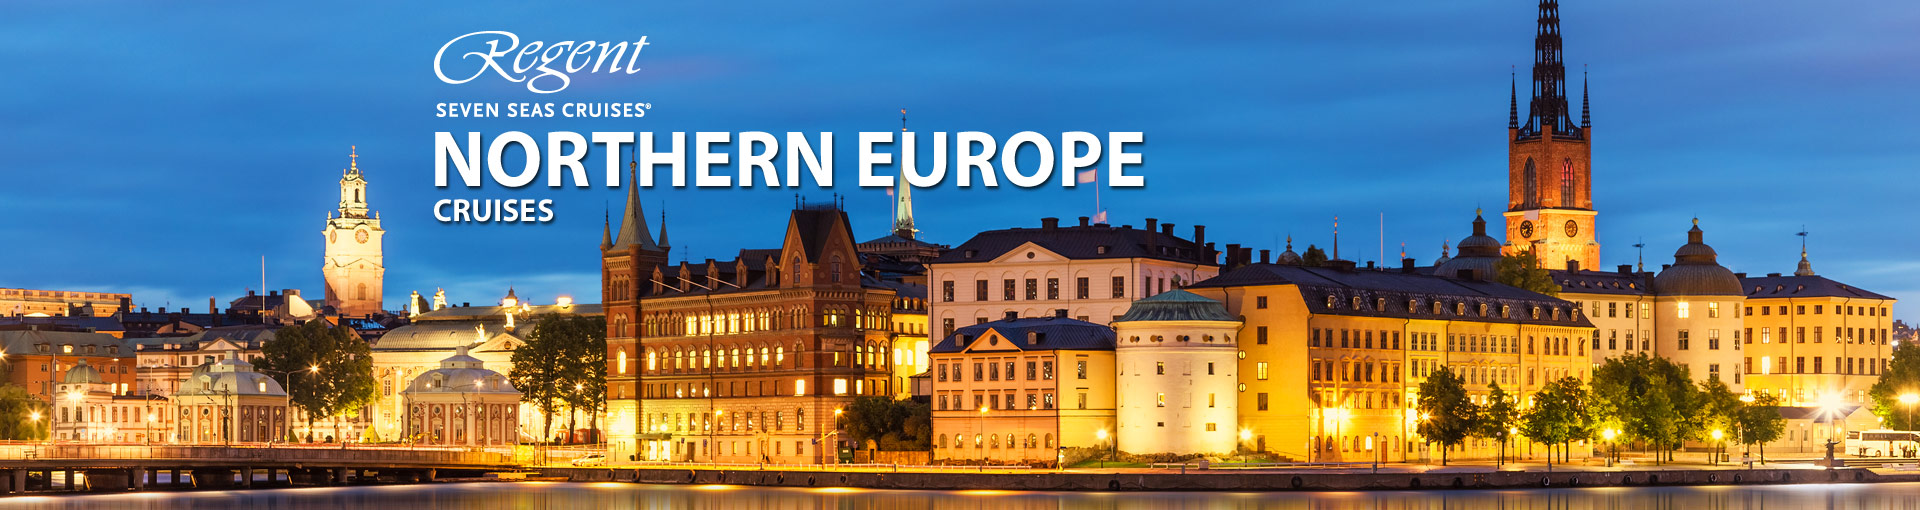 Regent Seven Seas Cruises Northern Europe Cruises